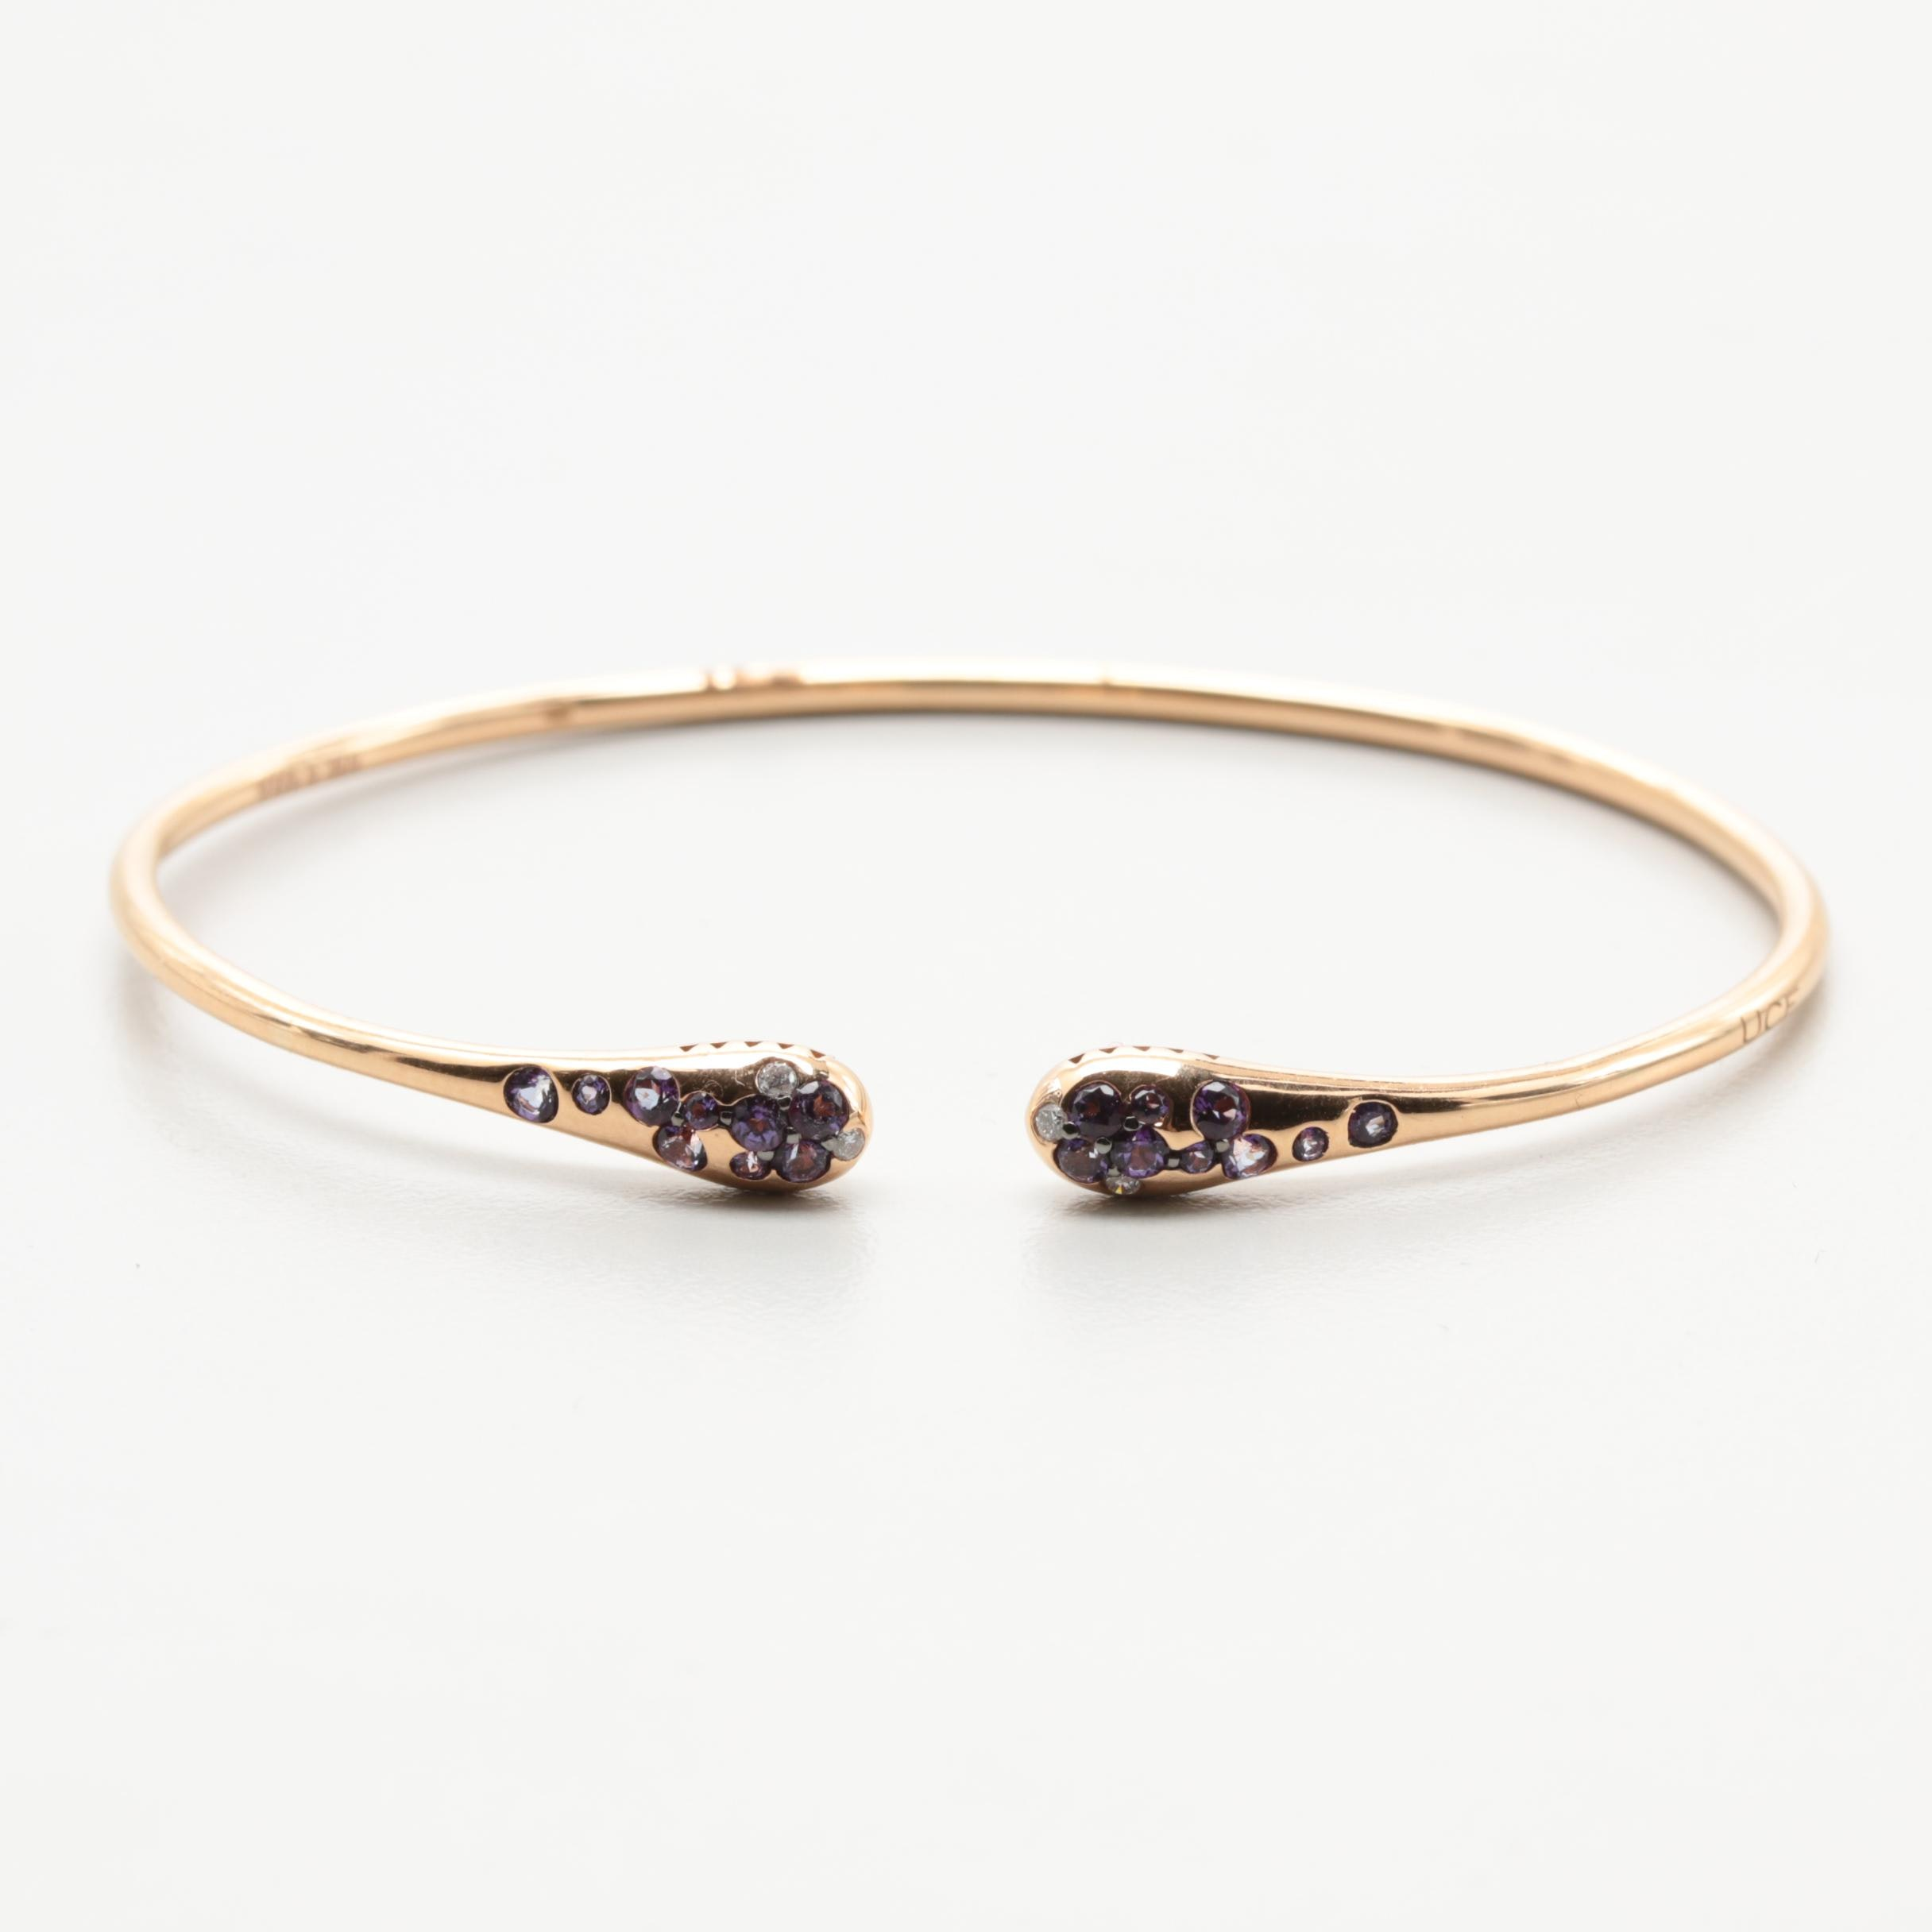 Italian 18K Rose Gold Diamond and Amethyst Open Bangle Bracelet